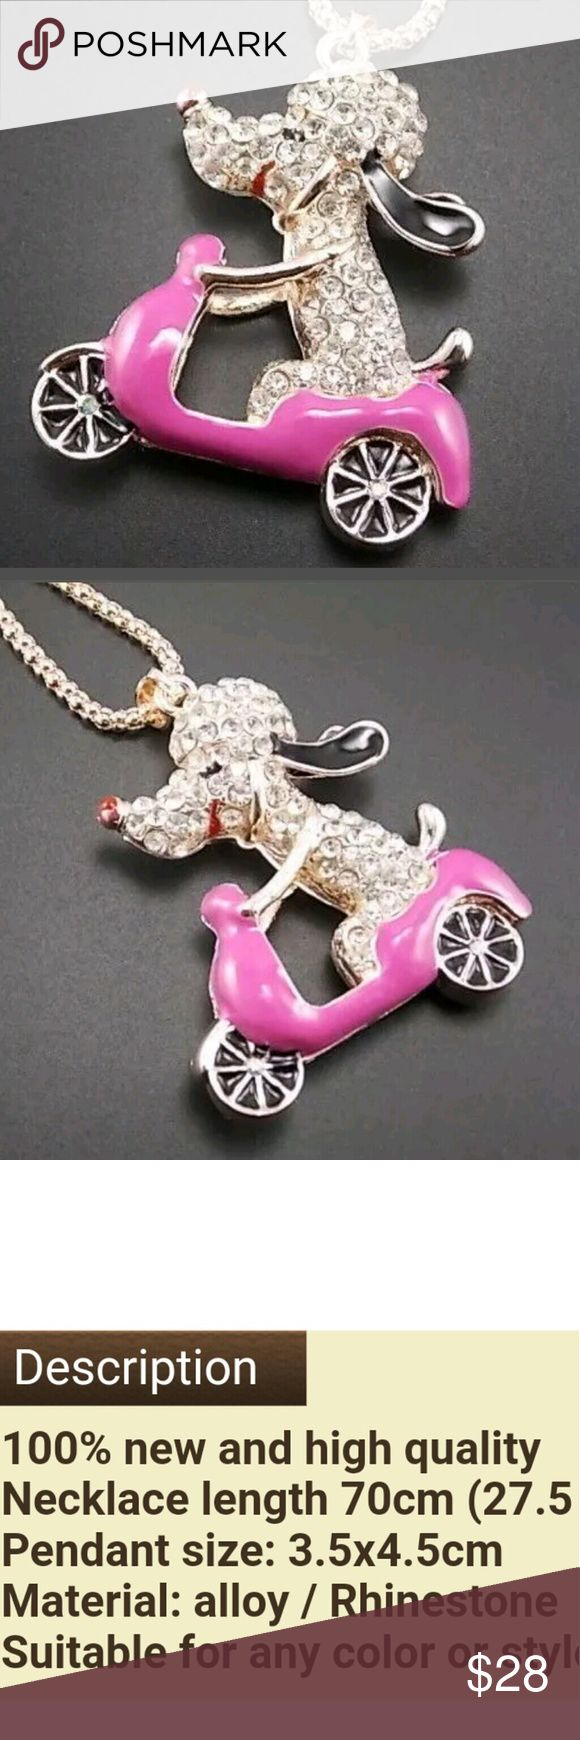 New Betsey Johnson poidle dog riding a purple car New Betsey Johnson poodle dog riding a scooter or motorcycle. the car scooter or motorcycle is purple with a slight of pink tone. Cute and so pretty this becklace looks so real like .poodle dog eara are black and red nose and mouth surrounded by cristals and black cristals on eyes hes adorable See last pic  Colors avail purple car or scooter  And also a orange scooter same dog  Let me know which you prefer or I can create a new listing Betsey…